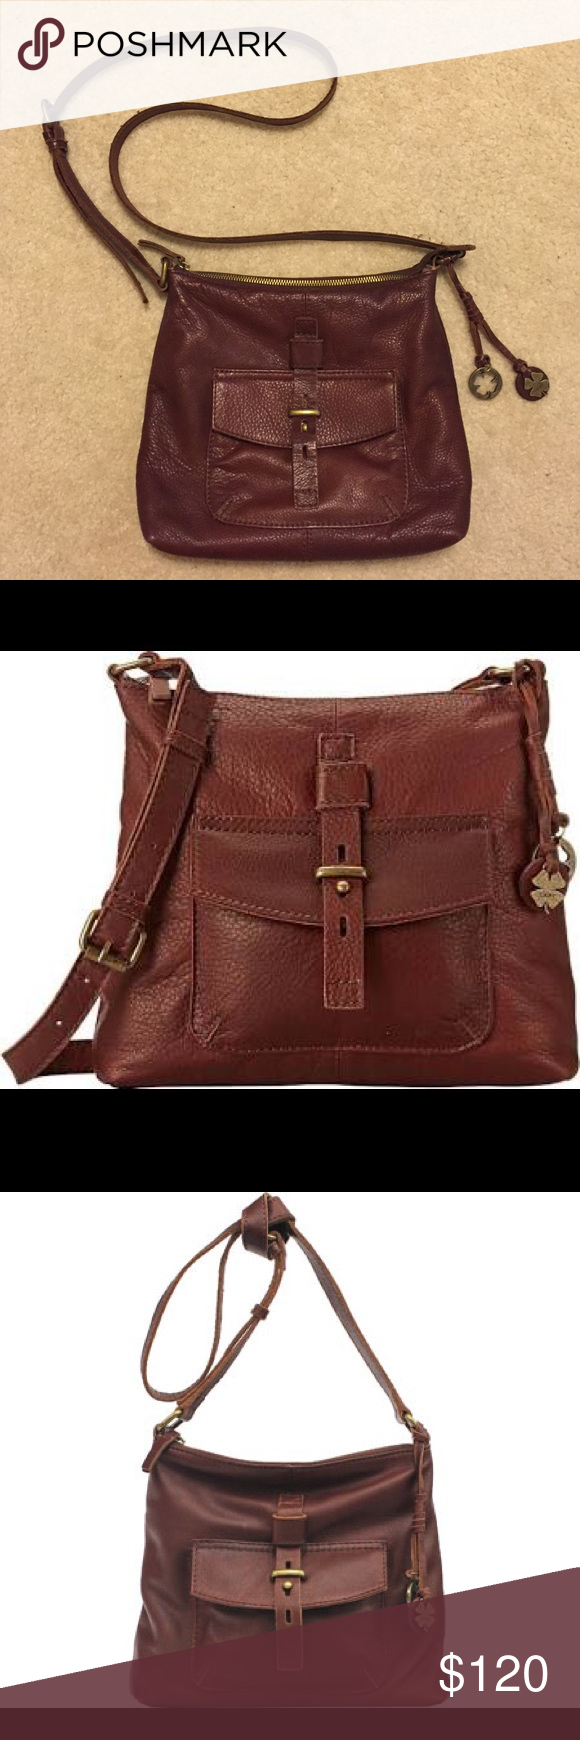 Lucky brand crossbody I purchased this and used it for about two weeks and realized it wasn't my style. I paid $180 and it is still in almost perfect condition. There are no signs of wear, stains, or rips. It was very well taken care of. Lucky Brand Bags Crossbody Bags